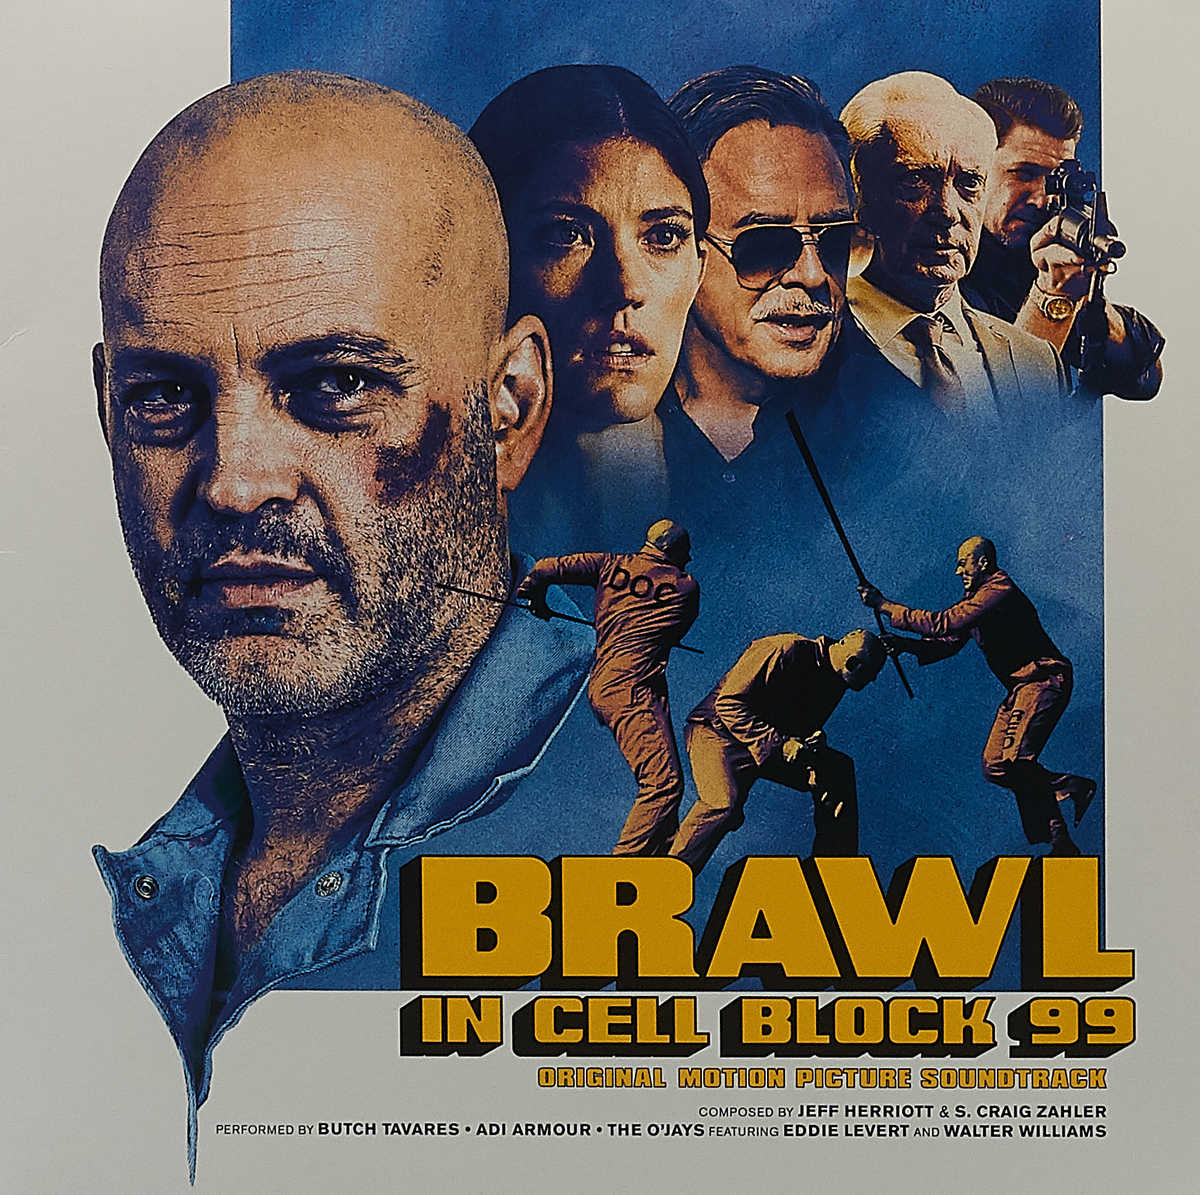 Butch Tavares,Adi Armour,The O'Jays Brawl in Cell Block 99. Original Motion Picture Soundtrack (LP) the last picture show original recordings featured in the soundtrack